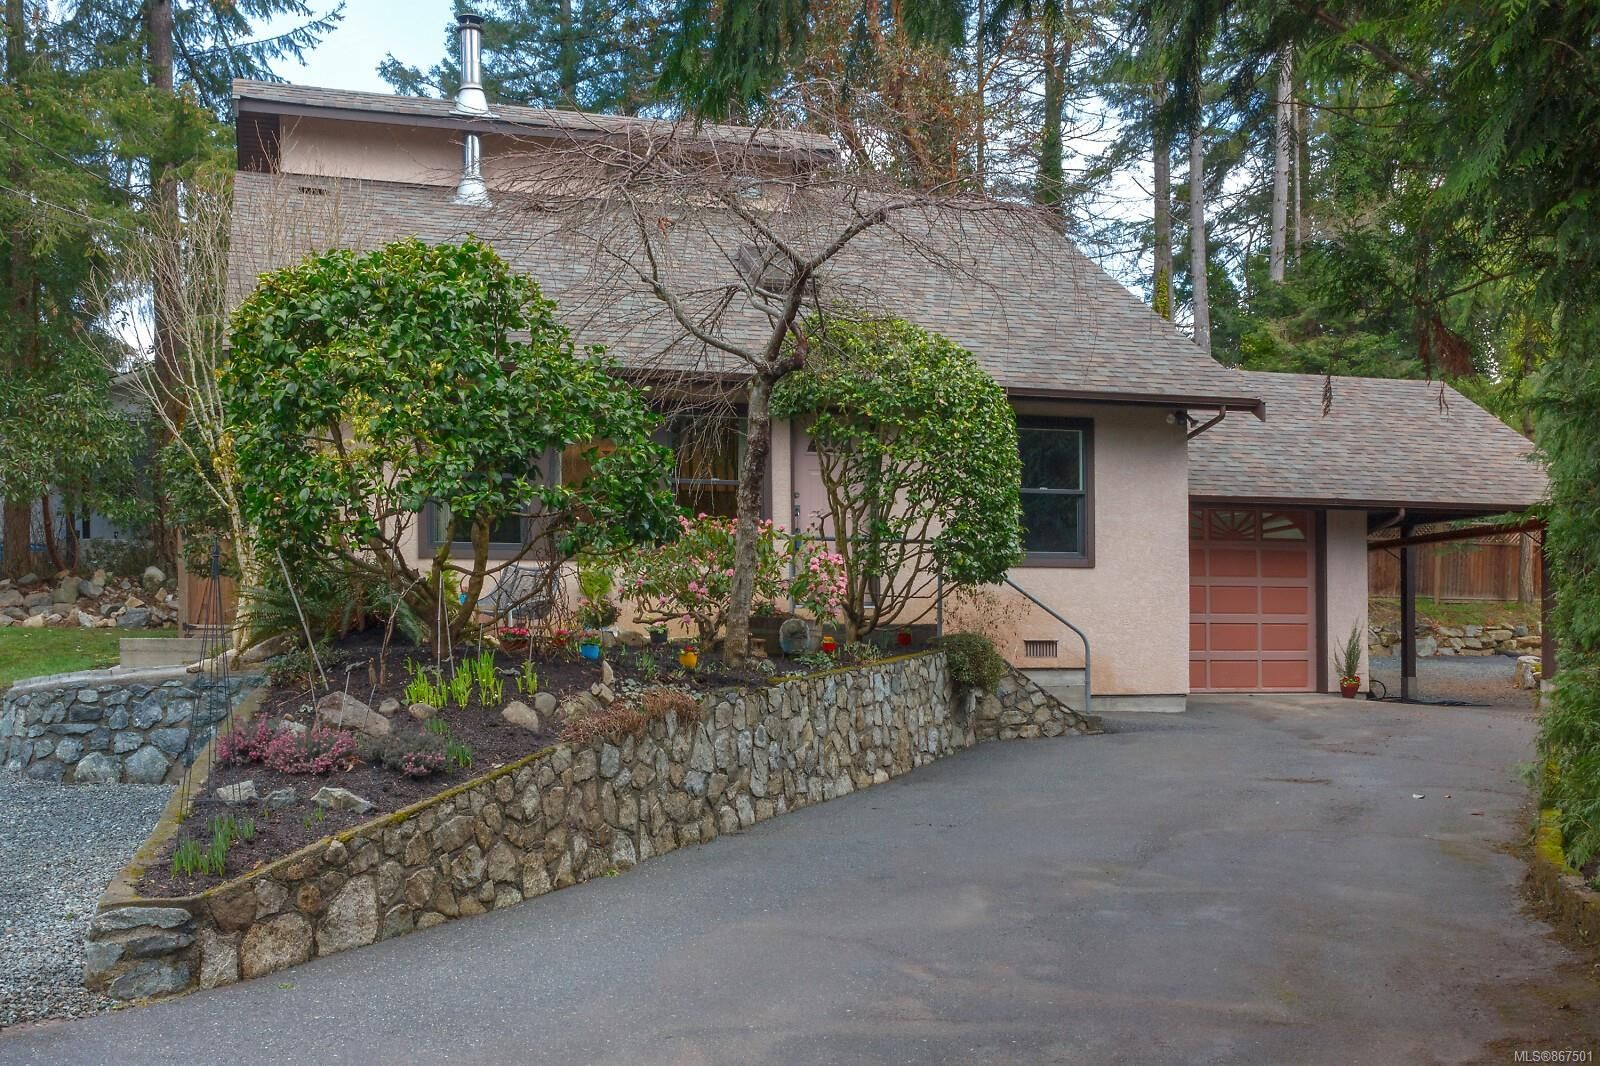 Main Photo: 7031B Brentwood Dr in : CS Brentwood Bay House for sale (Central Saanich)  : MLS®# 867501